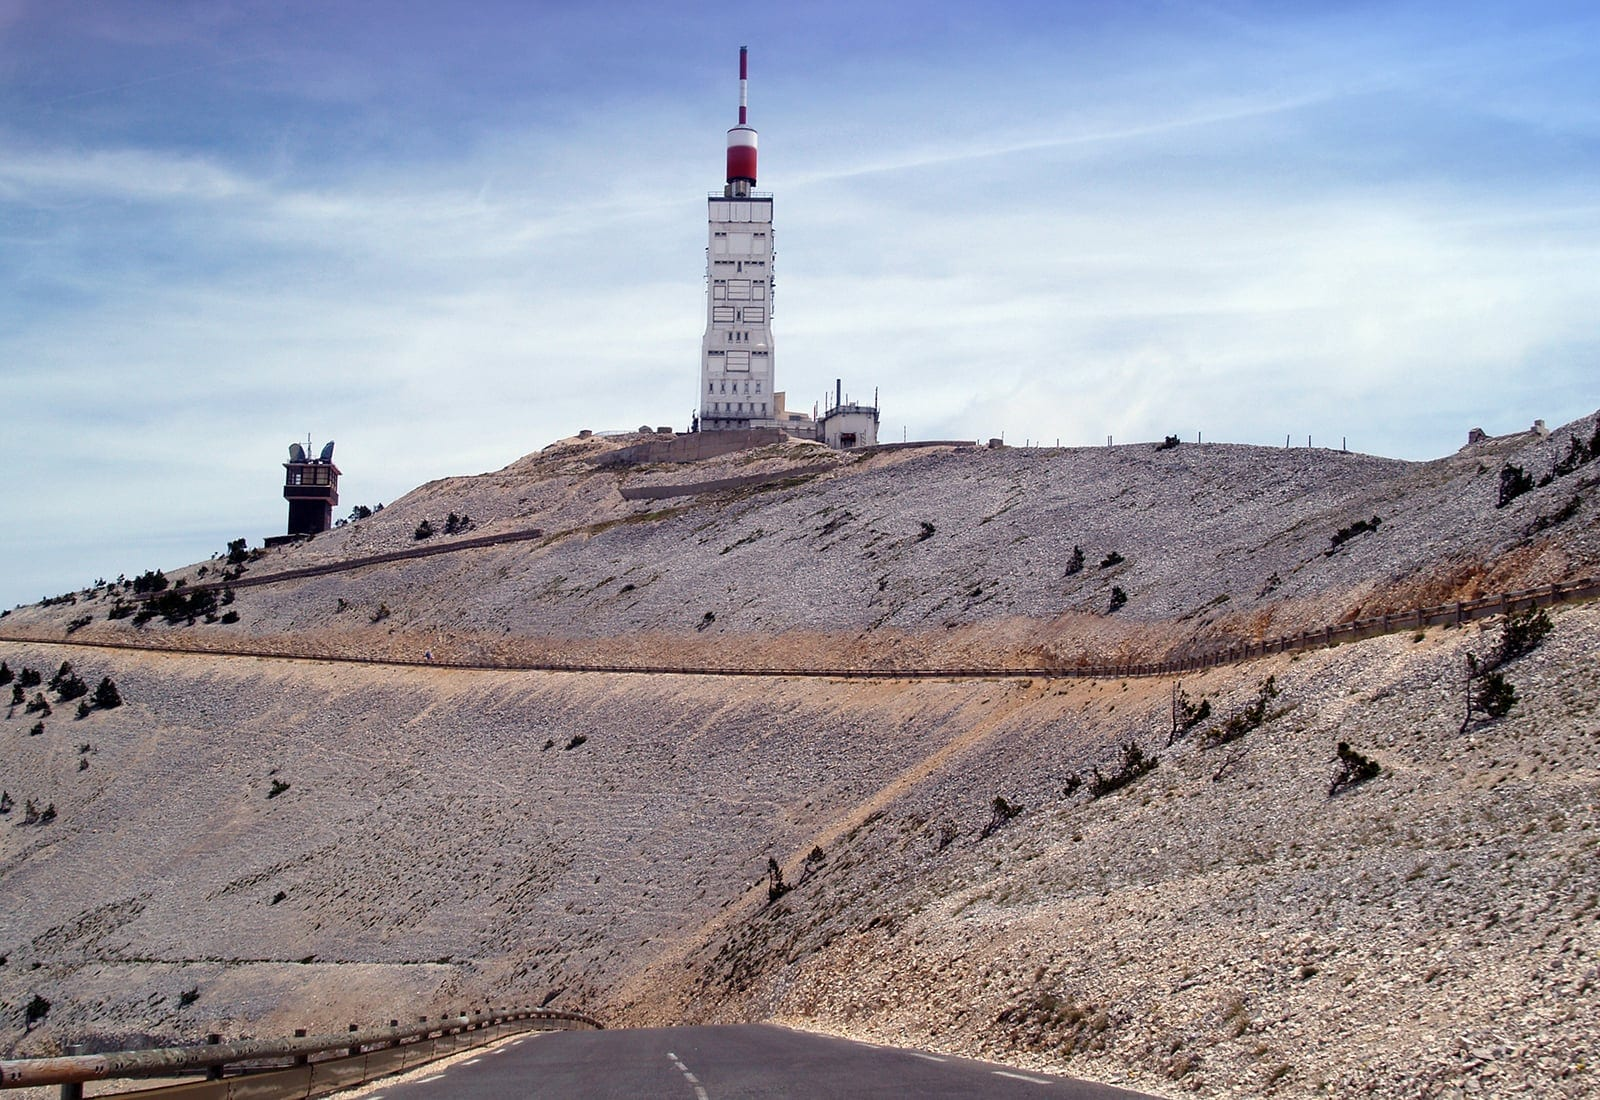 Summit area of Mont Ventoux in the Provence Region of France.